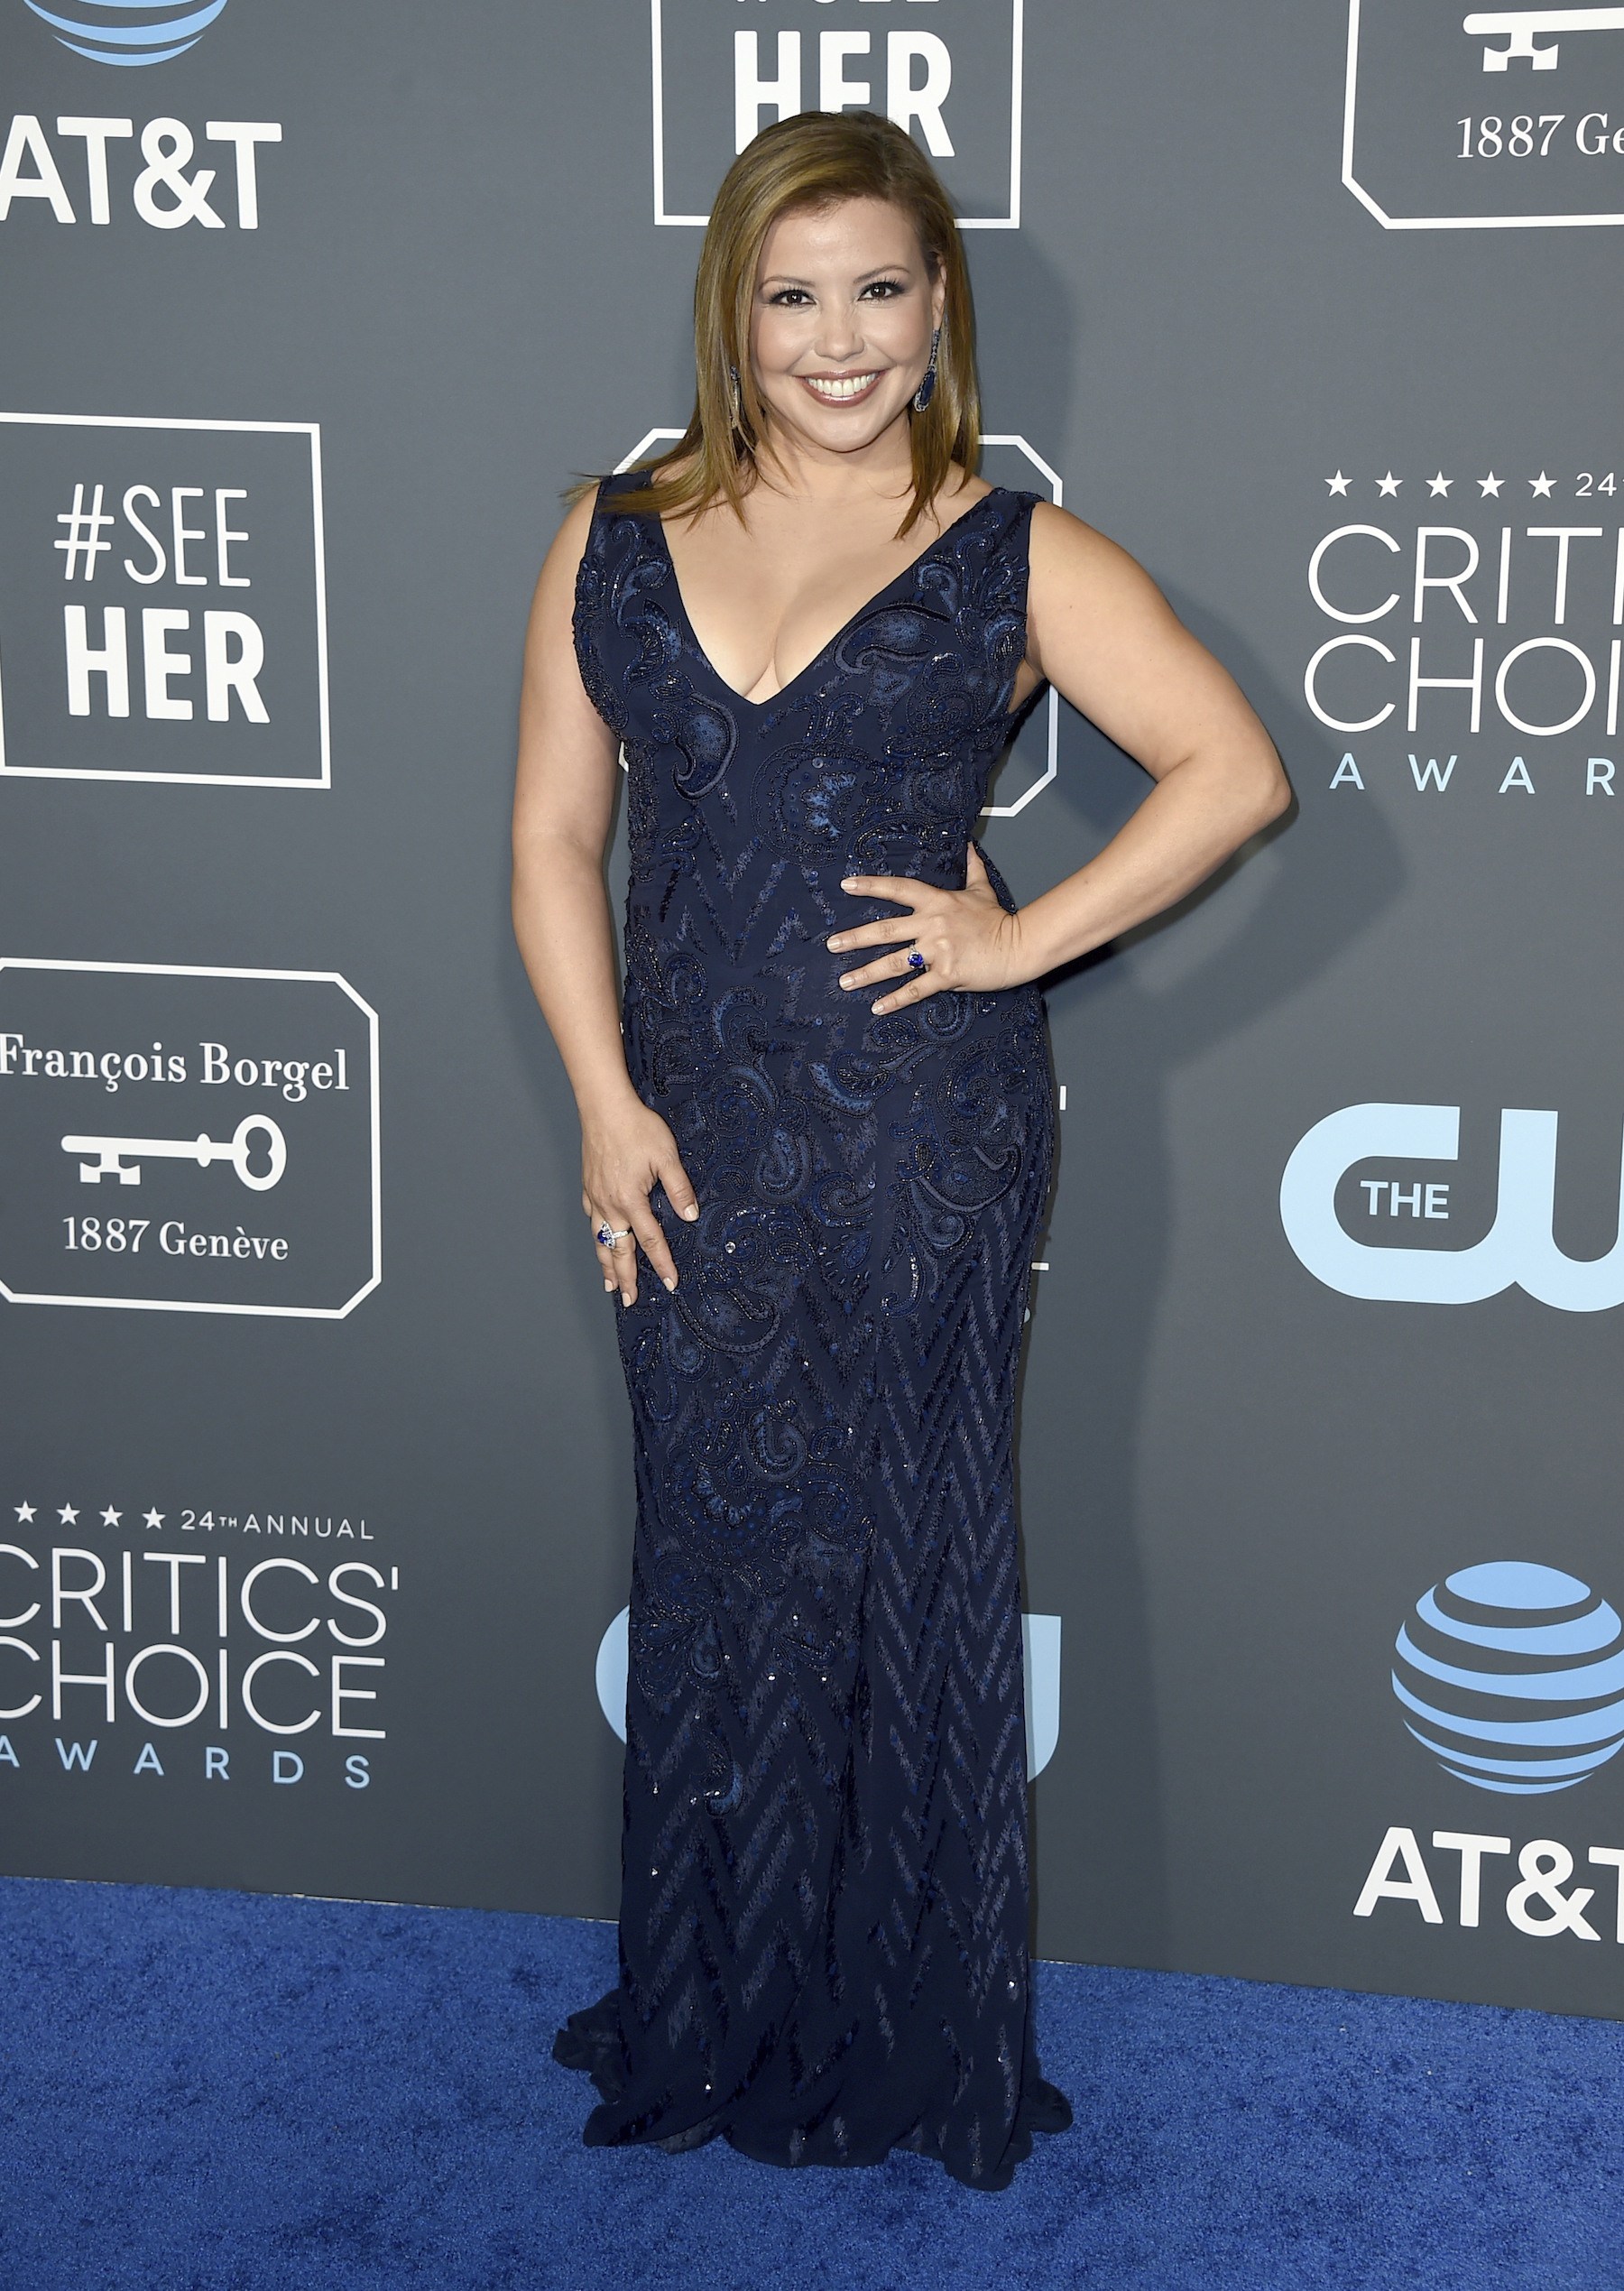 "<div class=""meta image-caption""><div class=""origin-logo origin-image ap""><span>AP</span></div><span class=""caption-text"">Justina Machado arrives at the 24th annual Critics' Choice Awards on Sunday, Jan. 13, 2019, at the Barker Hangar in Santa Monica, Calif. (Jordan Strauss/Invision/AP)</span></div>"